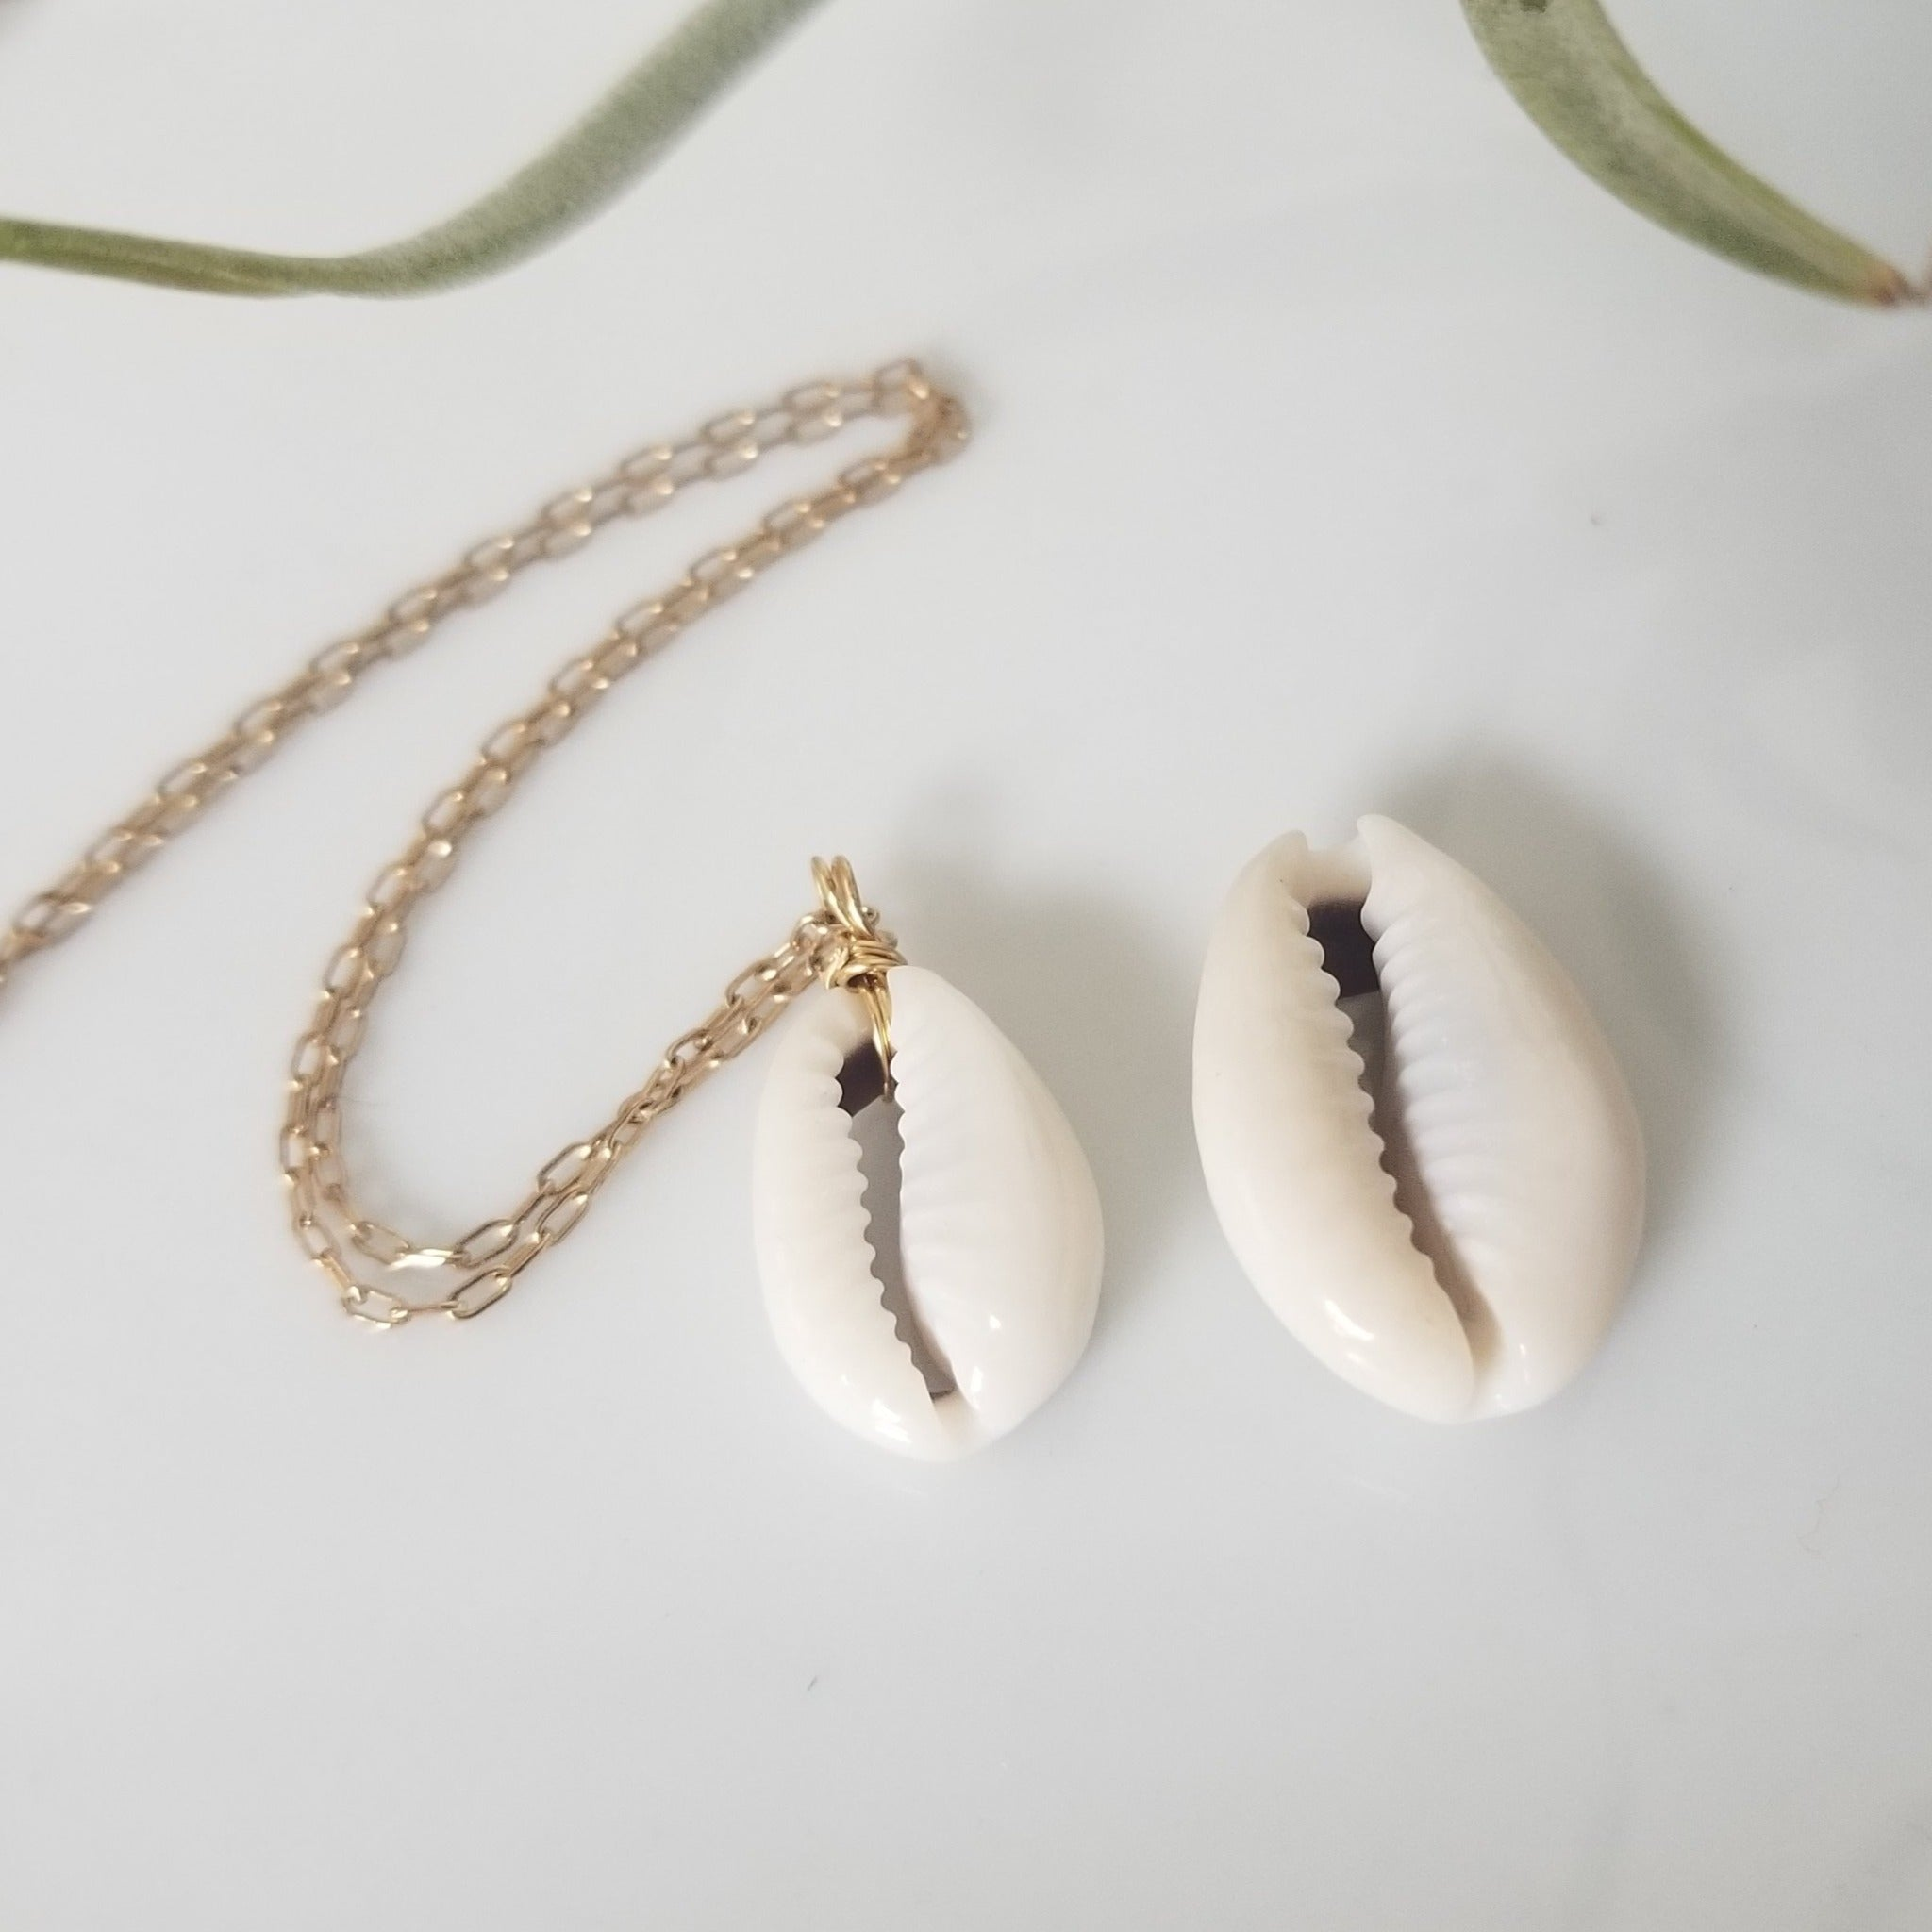 Natural Cowrie Shell Necklace - Small, Med, or Large Shell - Sterling or Gold